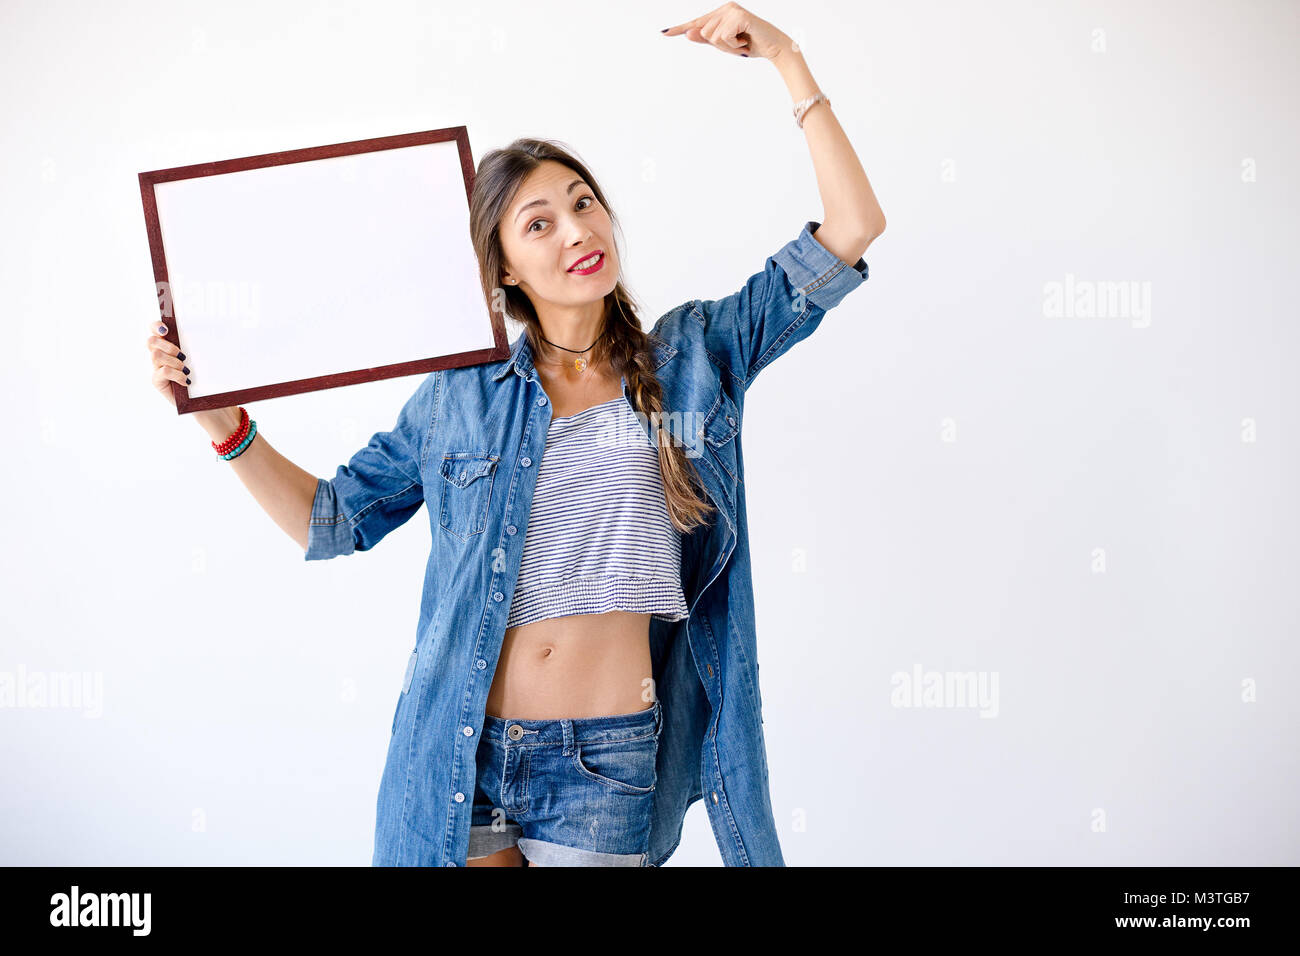 Body language concept - smiling young playful woman showing an empty right shoulder side display of a product for - Stock Image